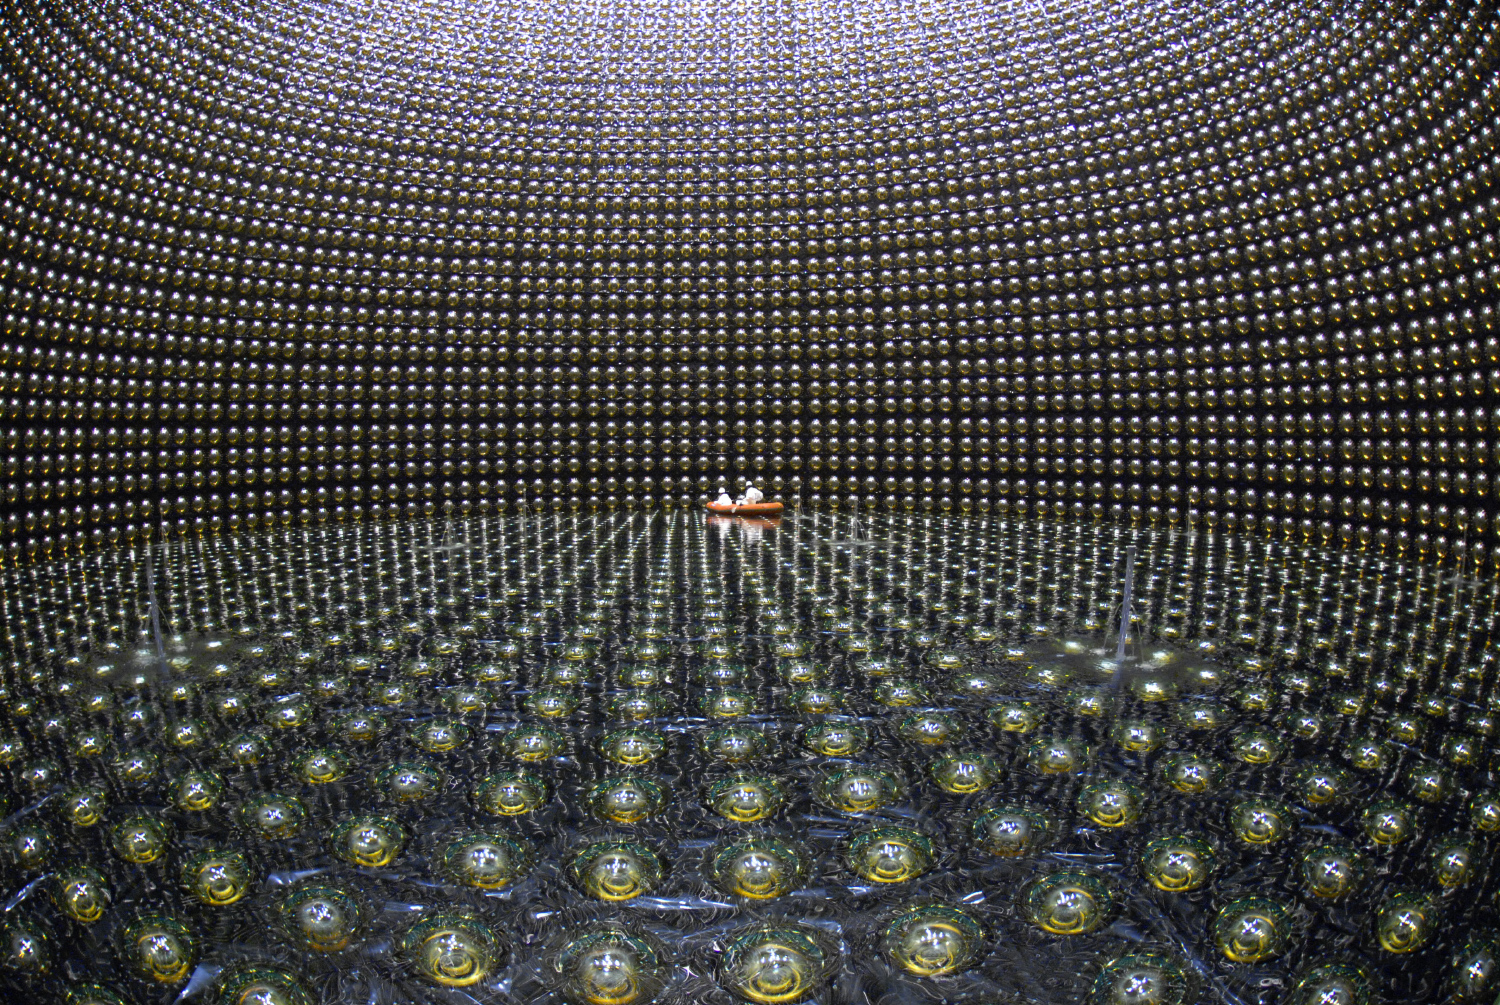 At the Super-Kamiokande observatory in Kamioka, Japan — shown here when it was being filled with water in 2006 — neutrinos interact with atoms inside the water, generating flashes of radiation that are picked up by the surrounding sensors and analyzed to determine the neutrinos' flavors.